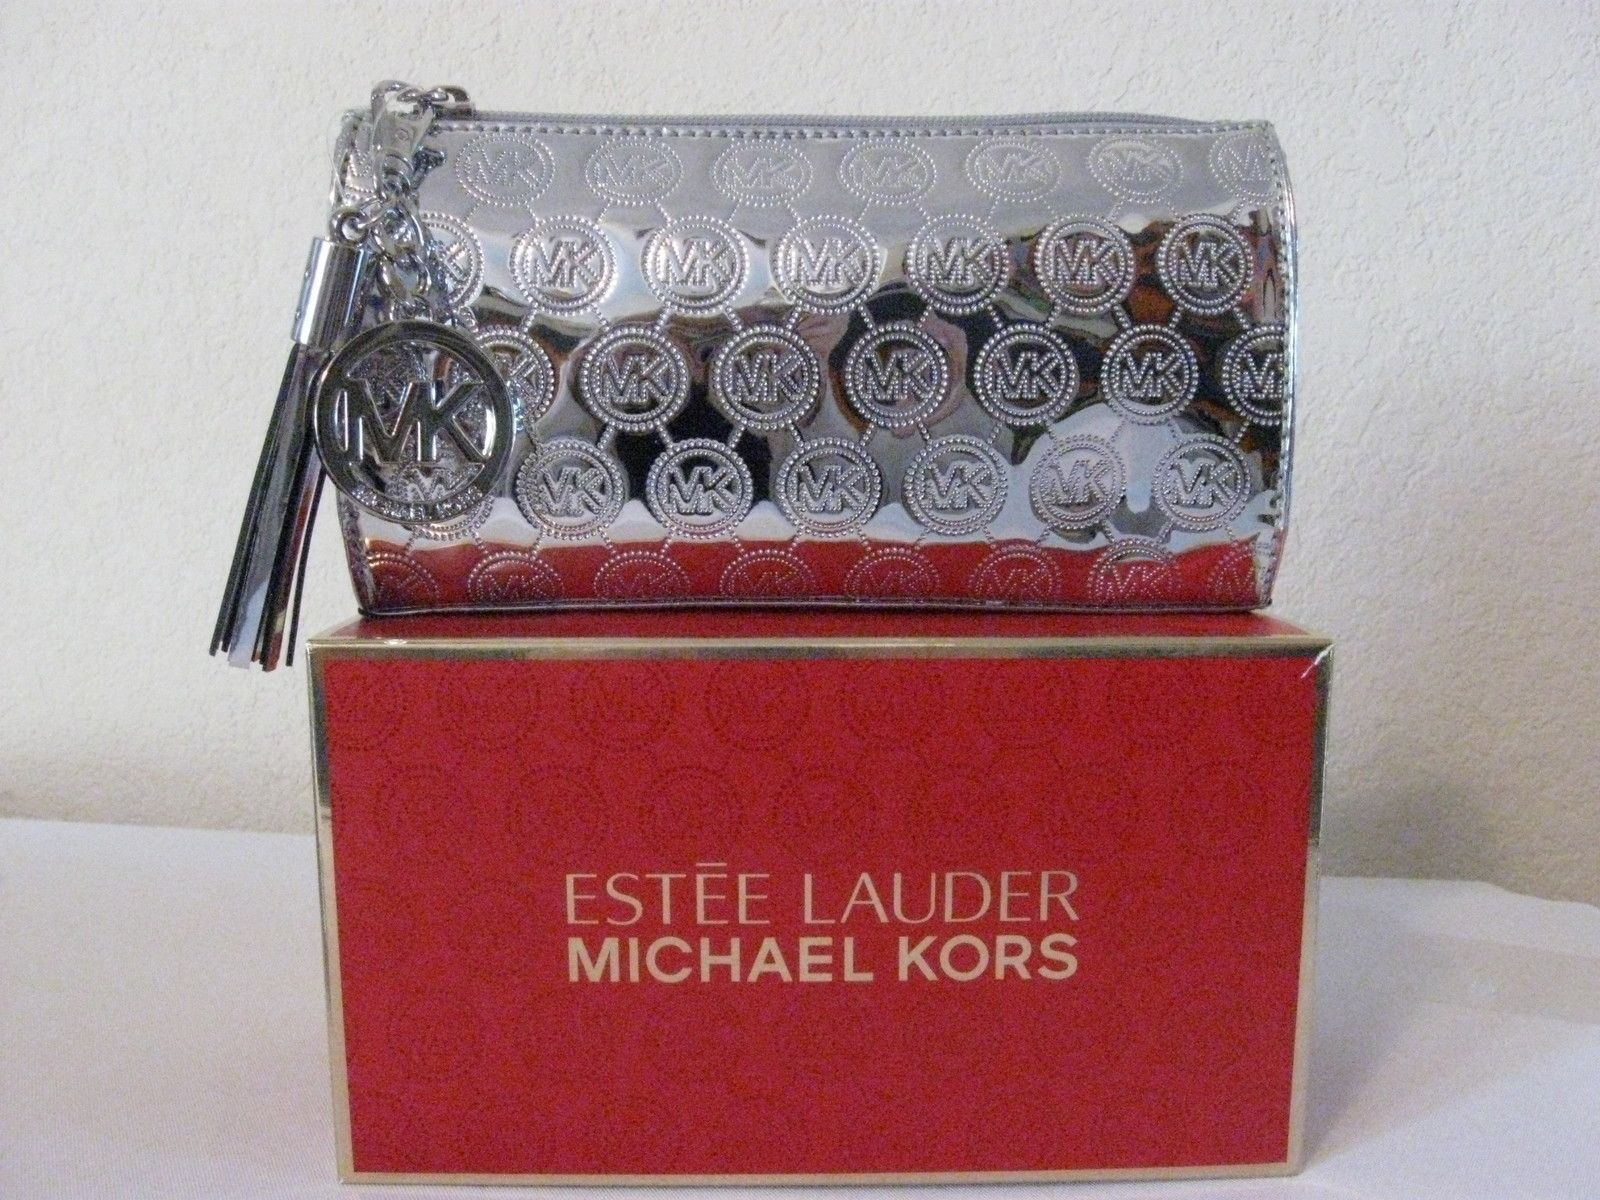 cdc853cca24cd3 MICHAEL KORS ESTEE LAUDER COSMETIC CASE HAND BAG CLUTCH METALLIC SILVER  GREY BOXED $39.95 WITH FREE SHIPPING | eBay